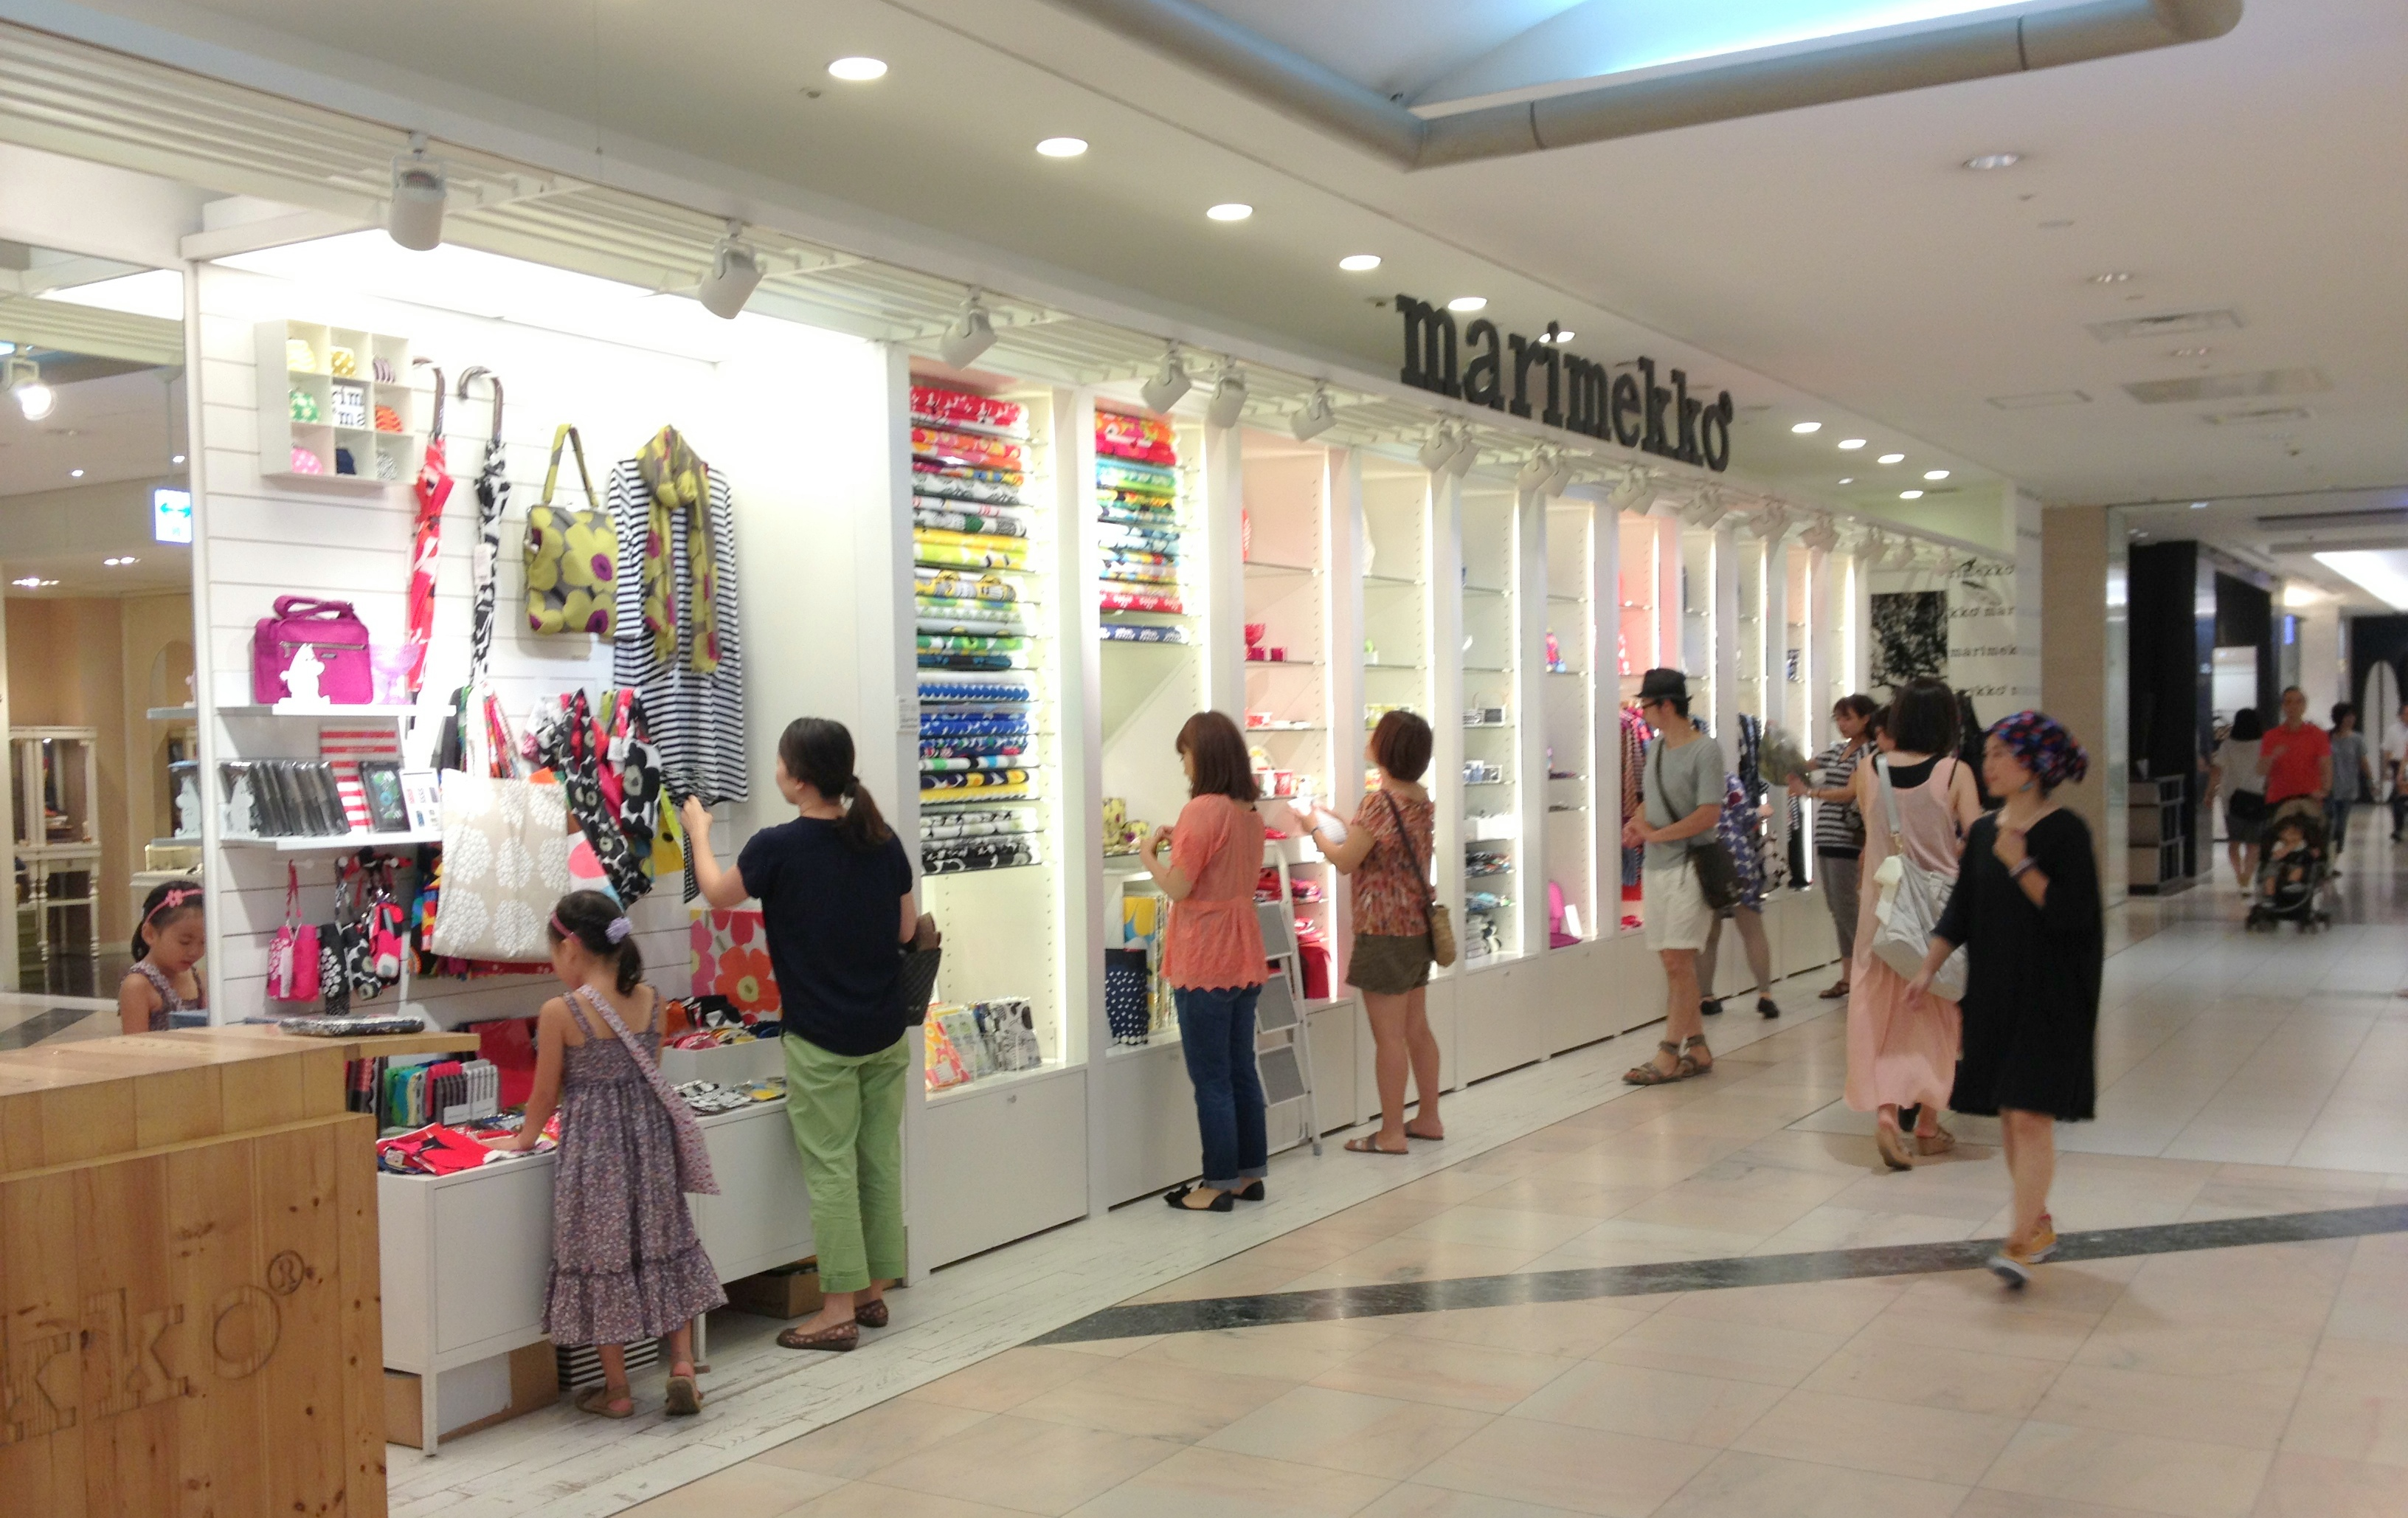 The tokyo craft guide ebook blossom heart quilts heading into the first shopping centre there were two more craft stores to explore with a surprise marimekko store spotted too fandeluxe Document